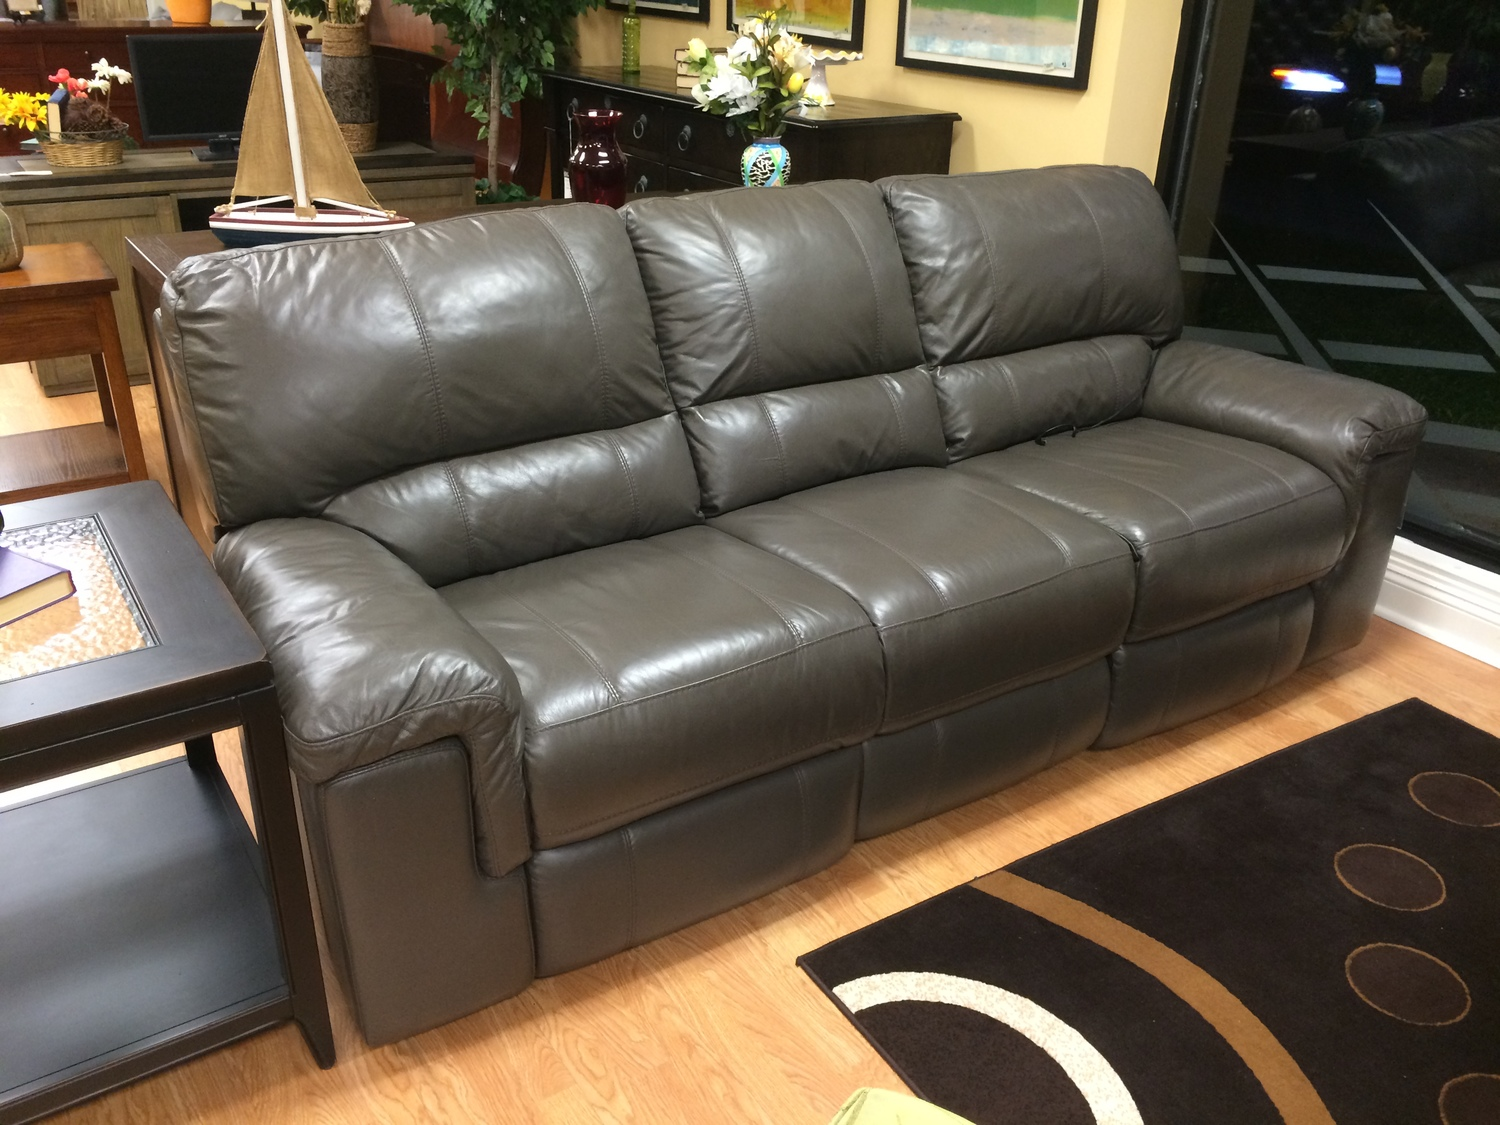 Thomasville Holbrook Gray Leather Motorized Recliner Sofa - 2015 Living Room & Occasional (Sold Archive) €� Furnish This - Fine